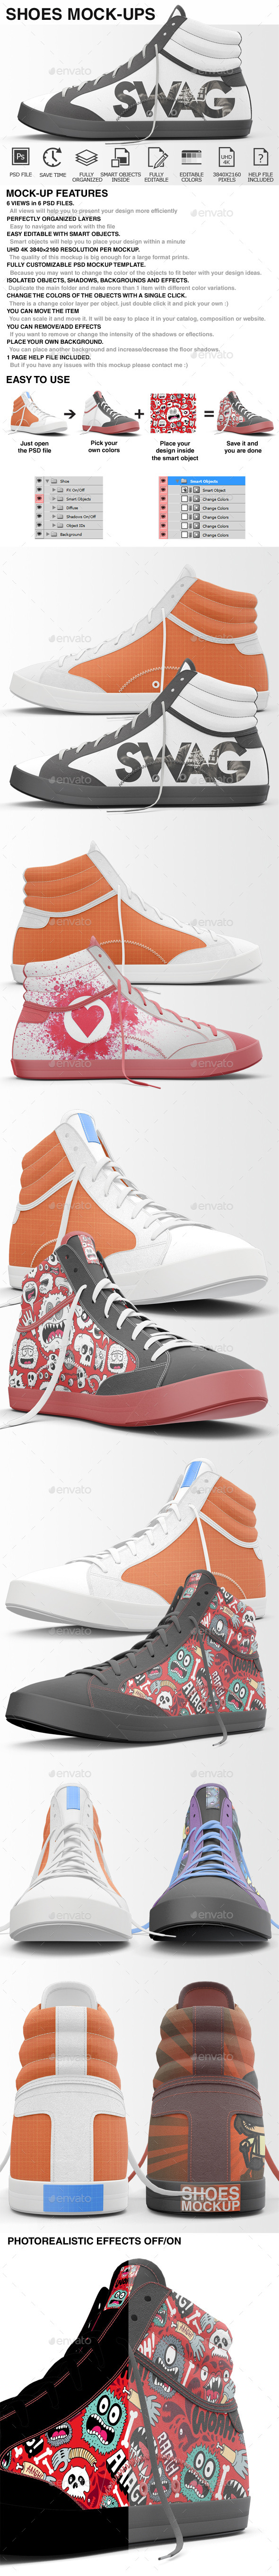 Shoes Mockup - Sneakers Shoes Mockups - Miscellaneous Apparel